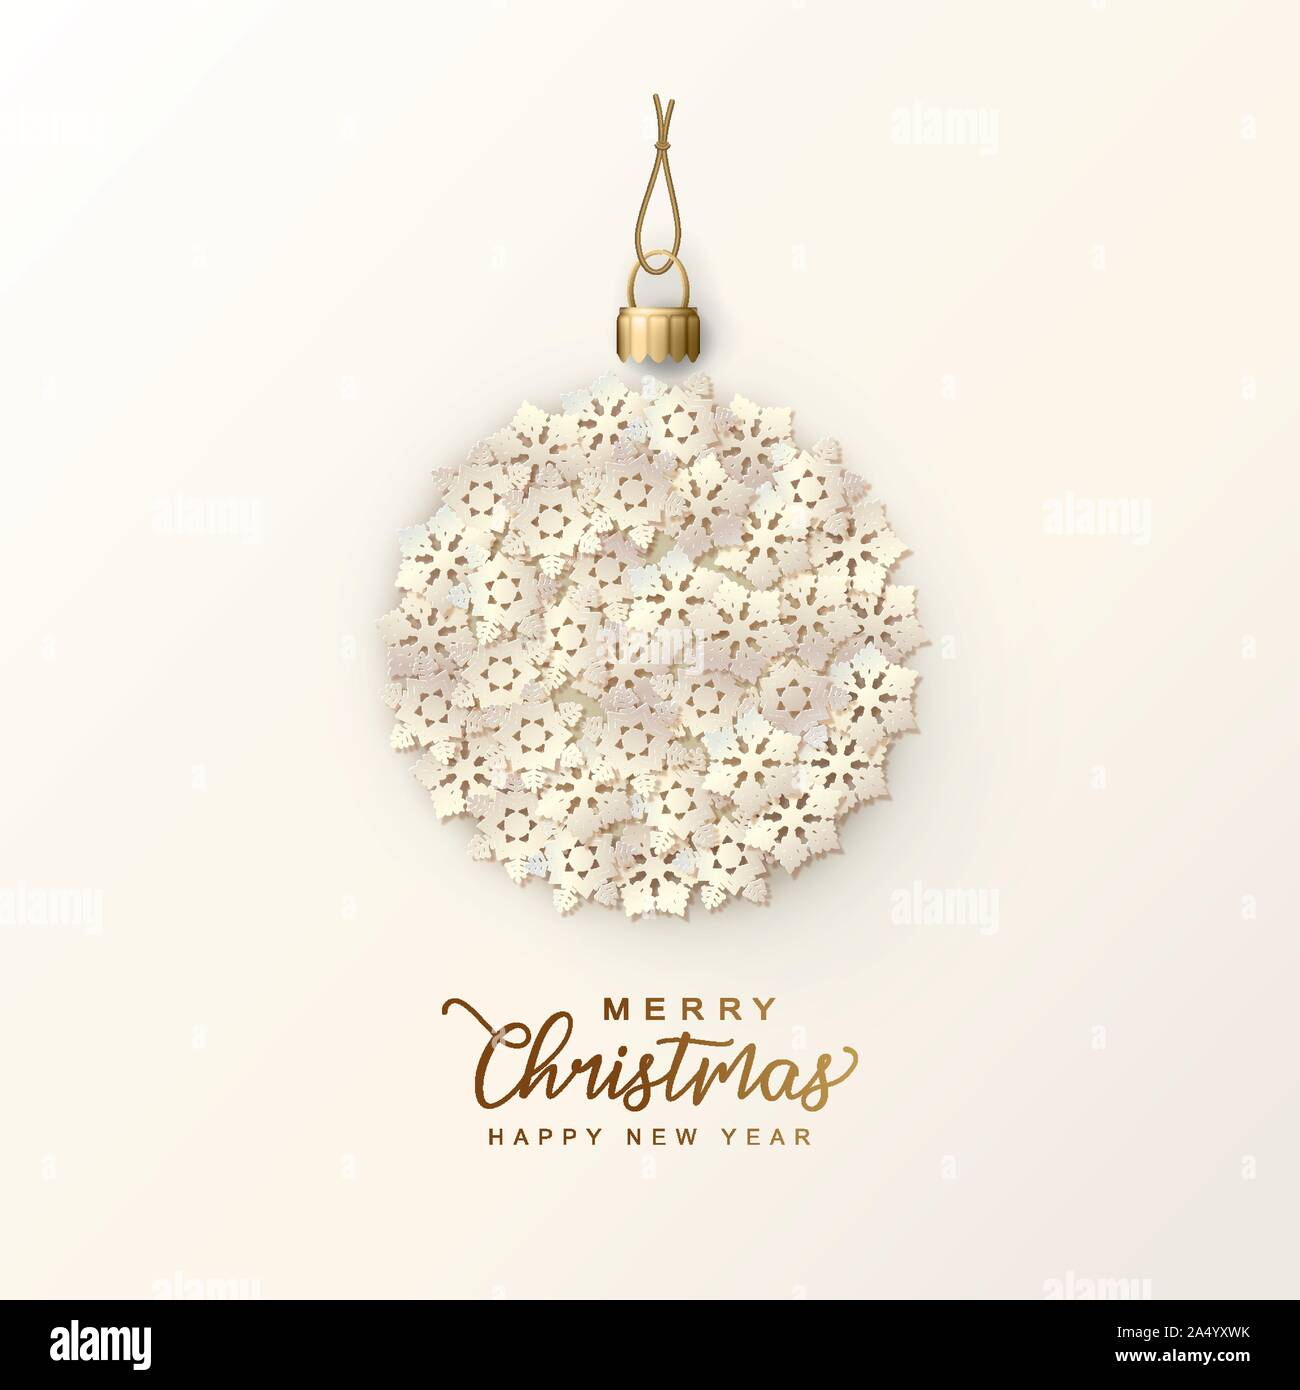 Holiday Christmas Card. Hanging Christmas tree ball formed of paper snowflakes. Festive vector background Stock Vector